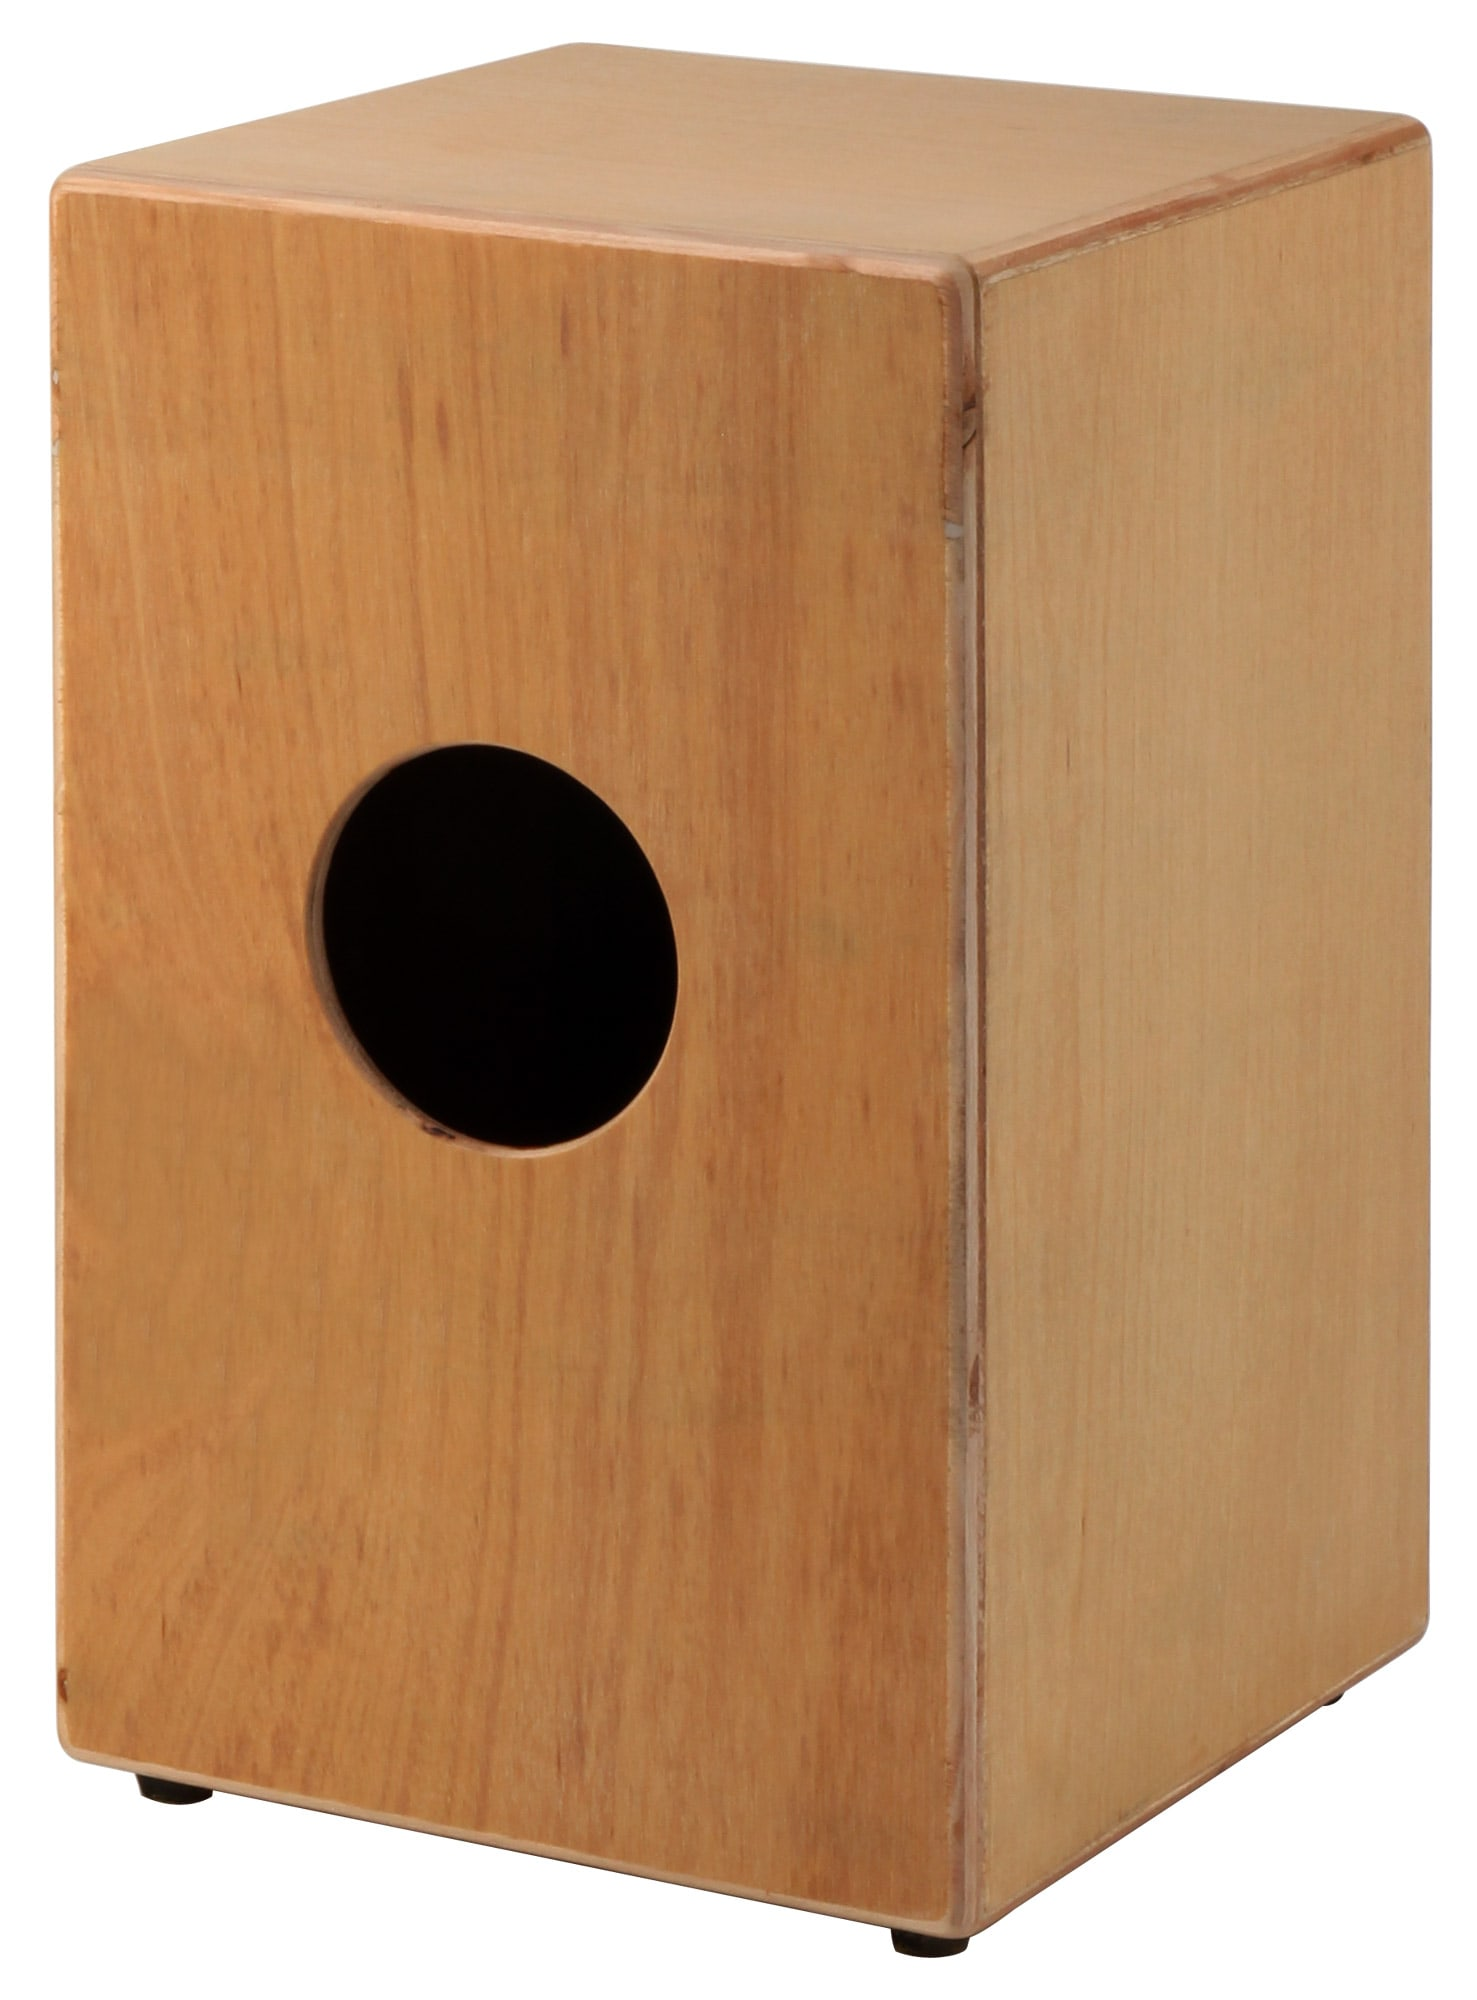 xdrum primero cajon sapele incl pocket snare sound box drum drum box wood incl gig bag. Black Bedroom Furniture Sets. Home Design Ideas